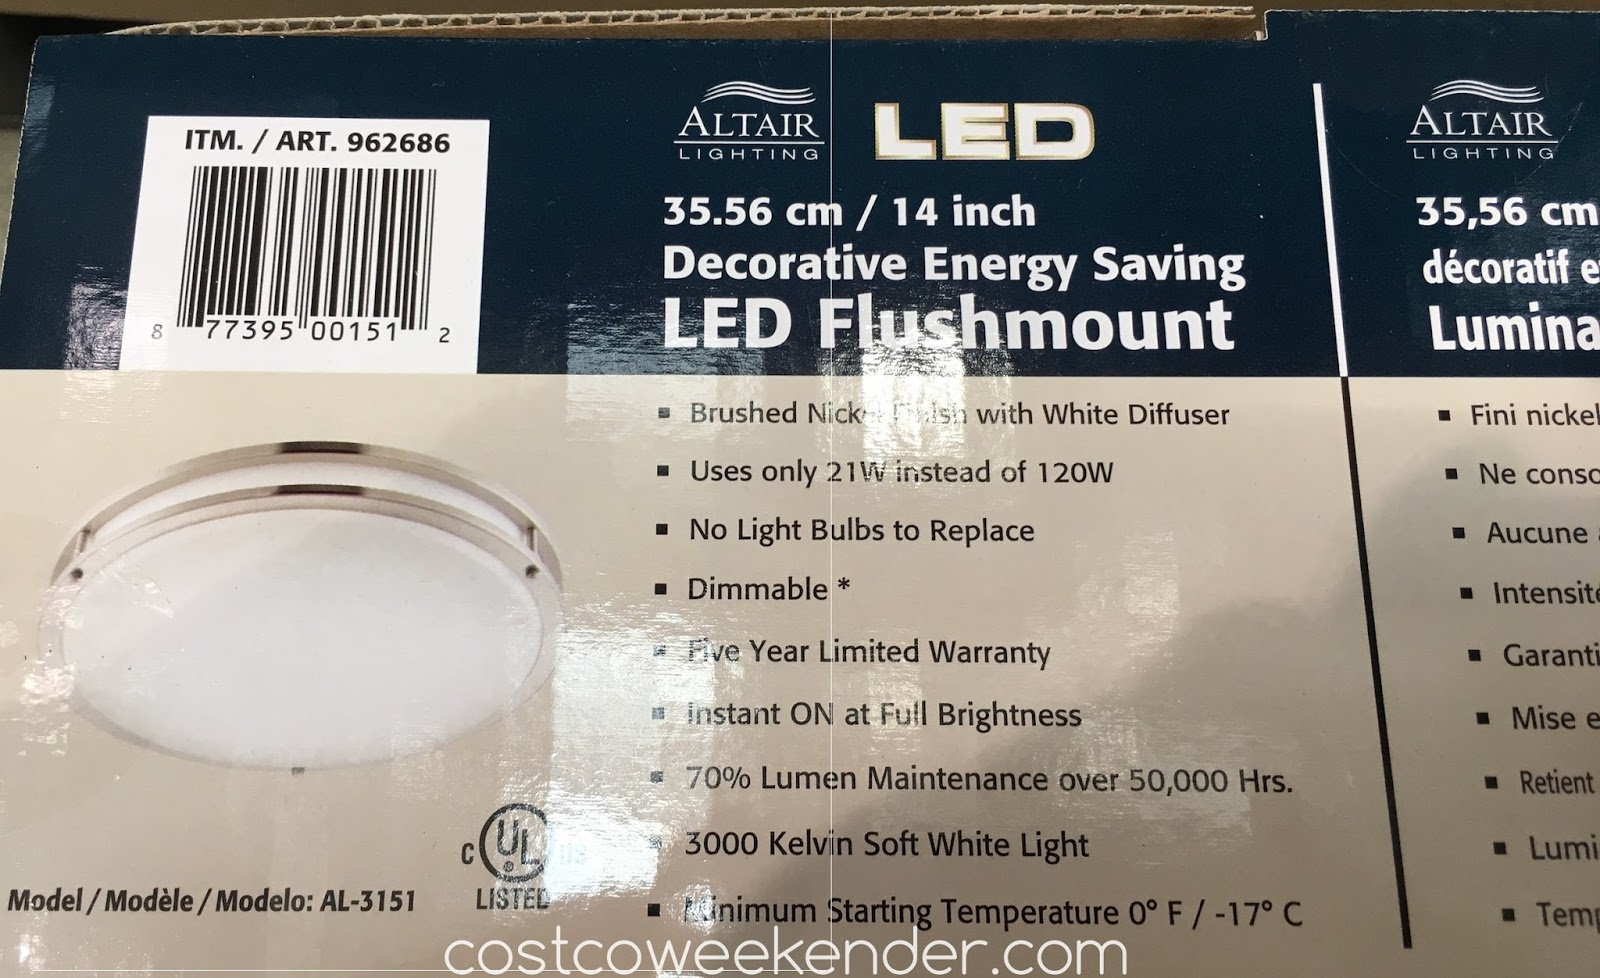 Costco 962686 - Make the switch to LED with the Altair AL-3151 Flushmount